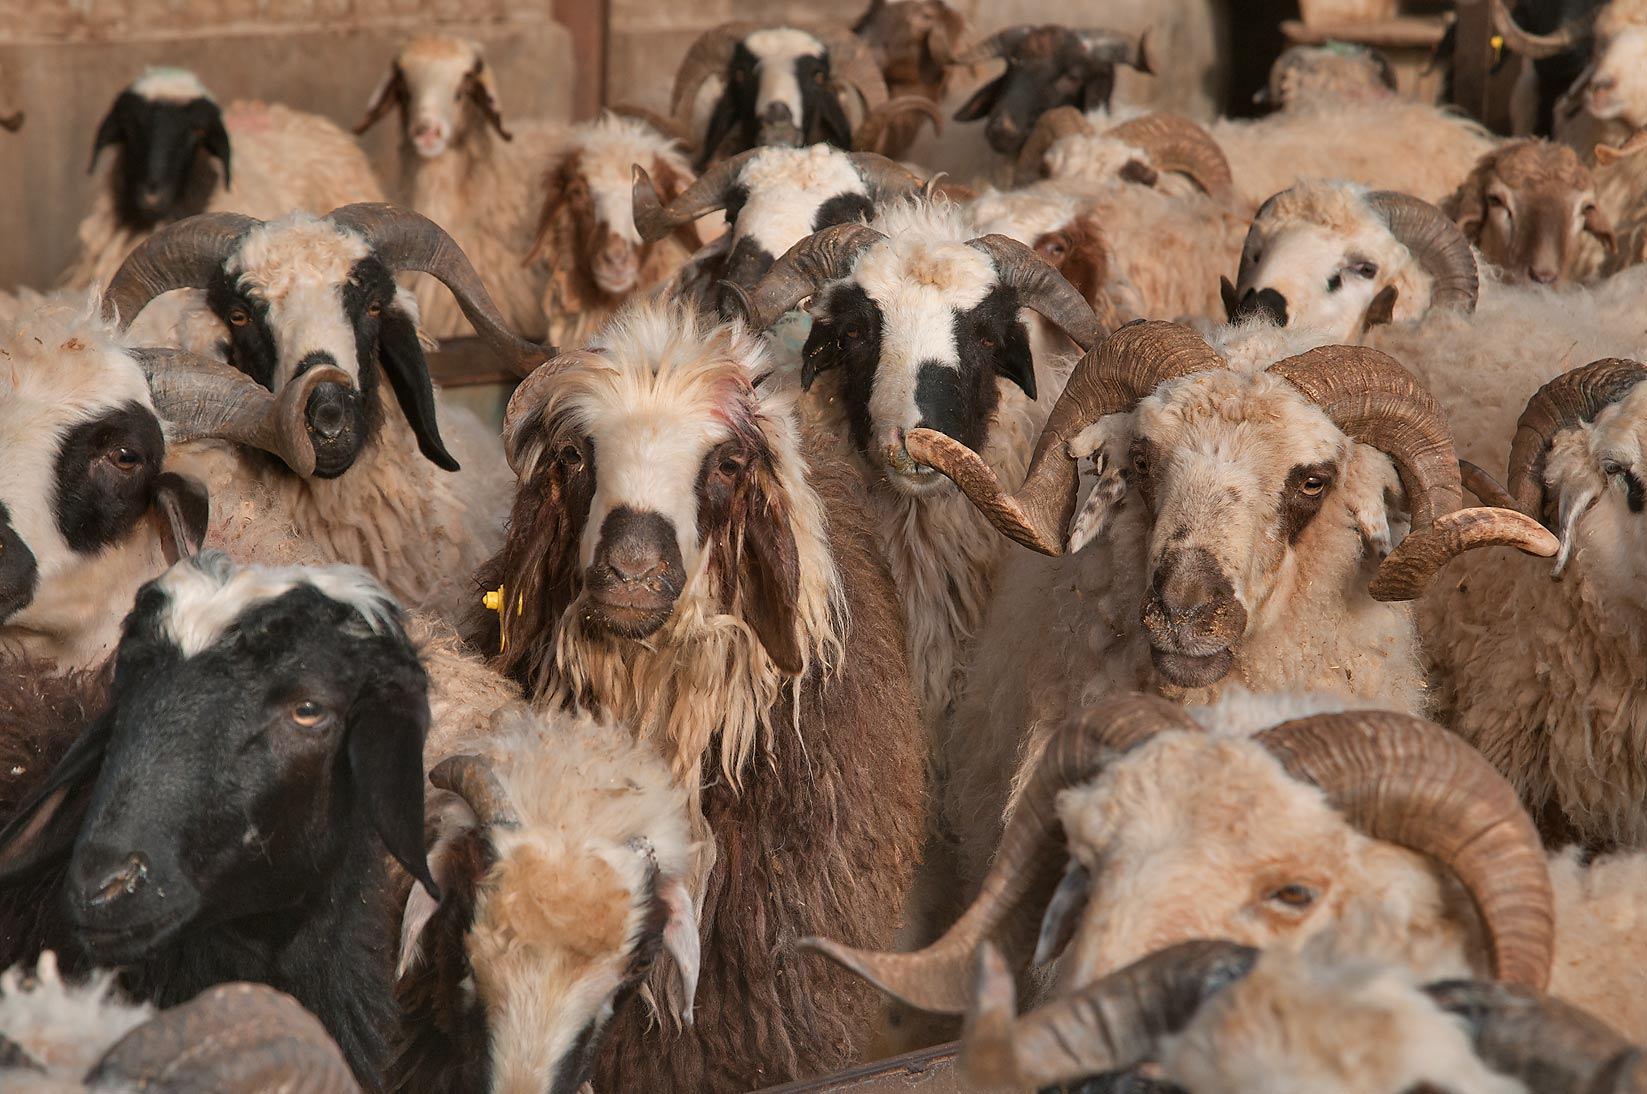 Herd of rams in a pen in Wholesale Animal Market. Doha, Qatar